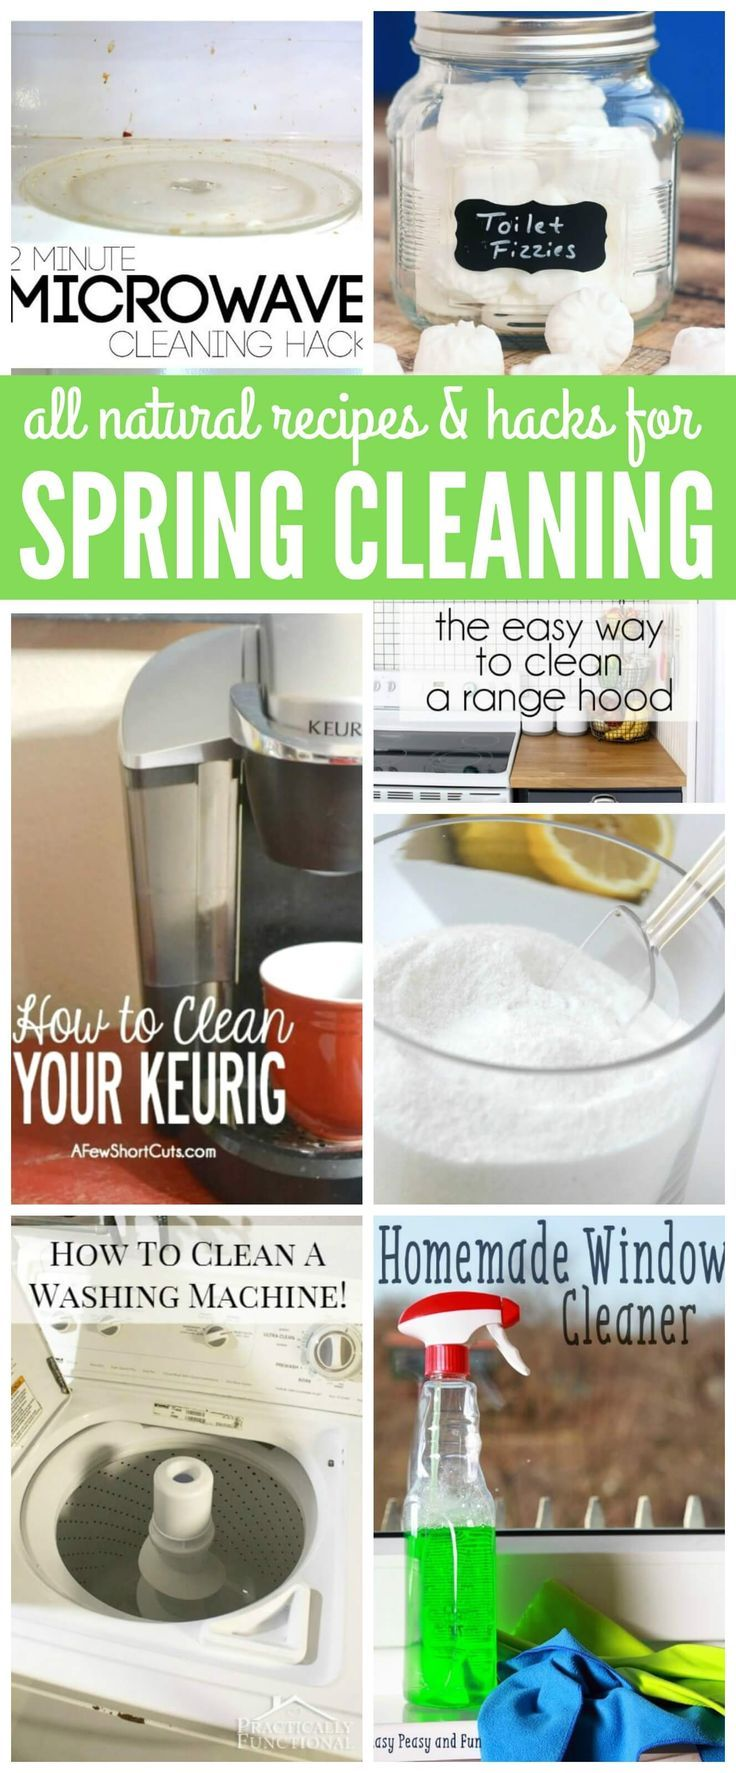 Best all natural cleaning products - All Natural Recipes And Hacks For Spring Cleaning Tip And Tricks To Take The Chemicals